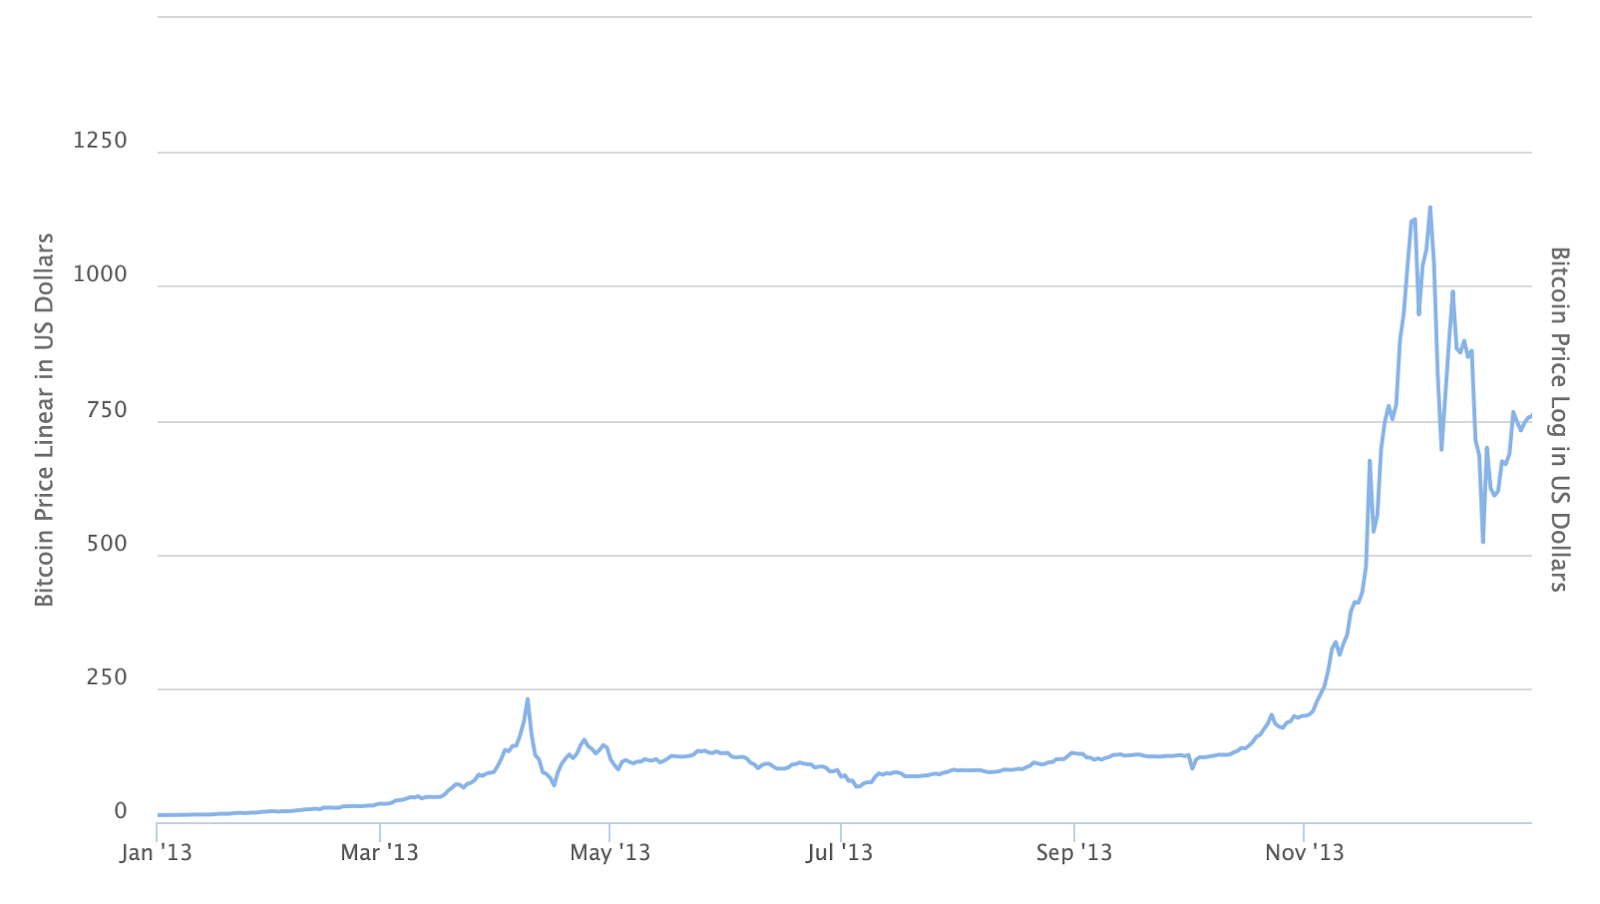 Bitcoin price in 2013